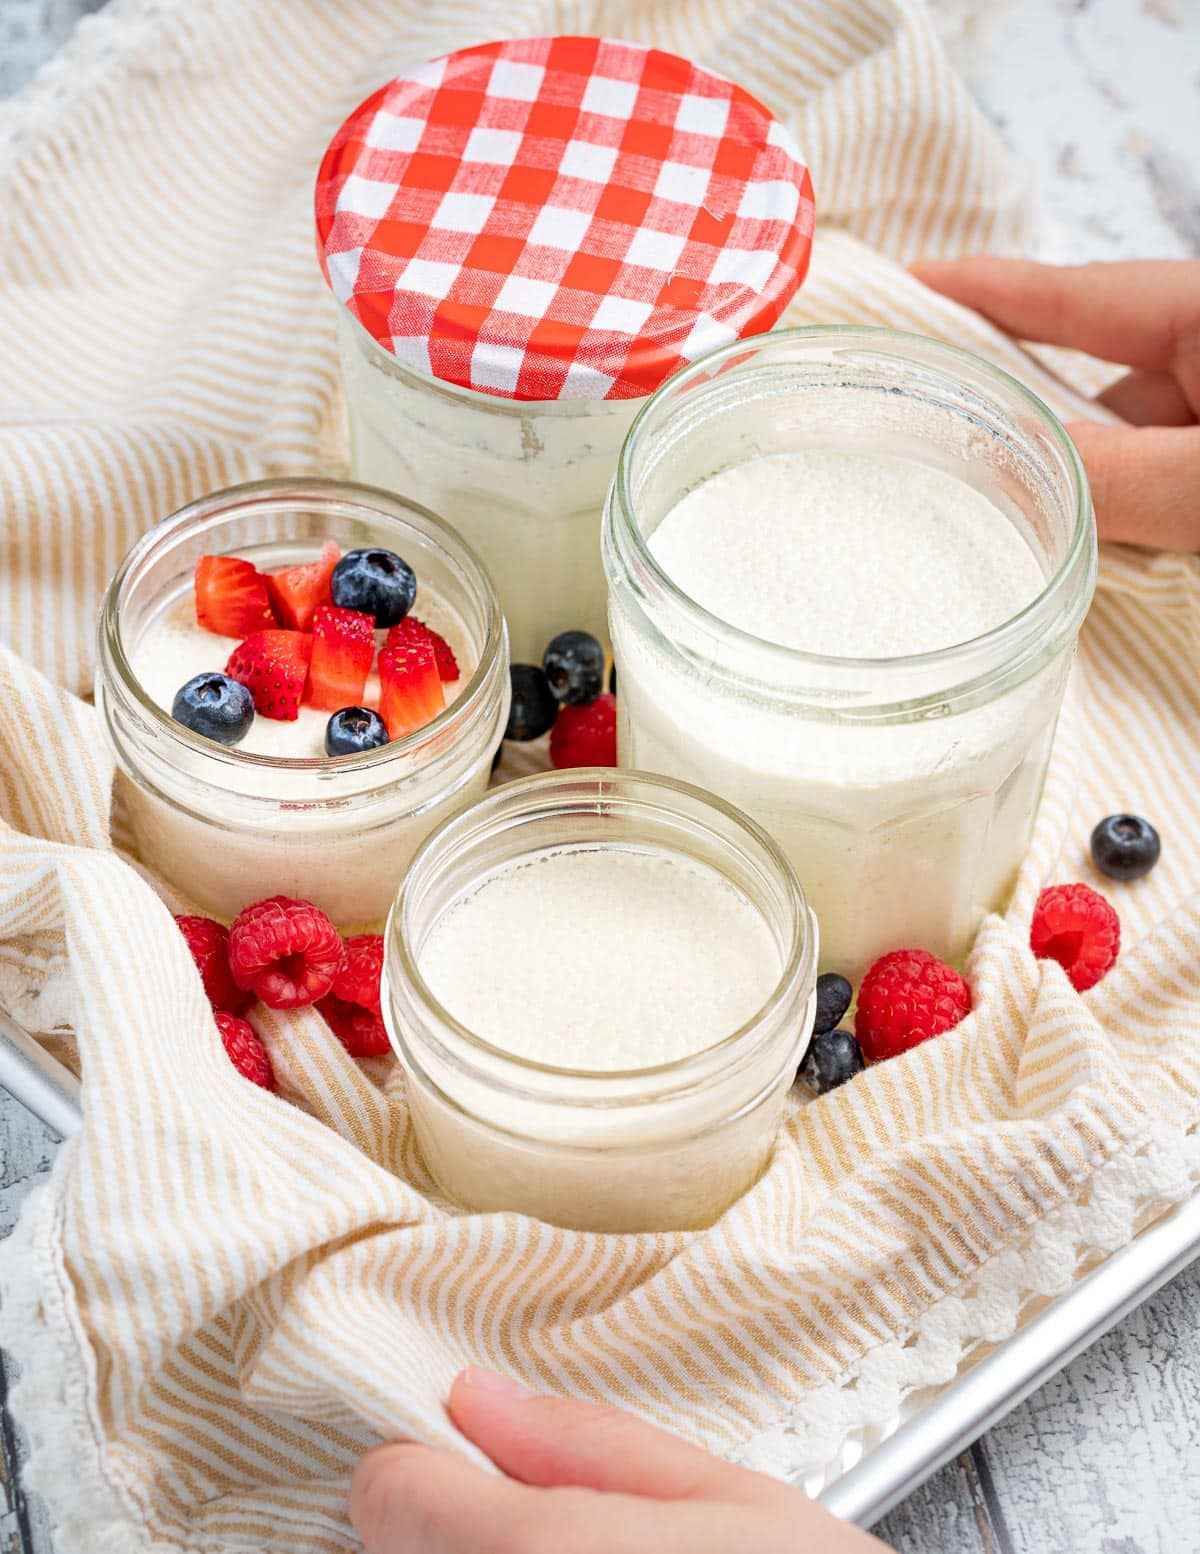 a tray with open jars of vegan yogurt on it